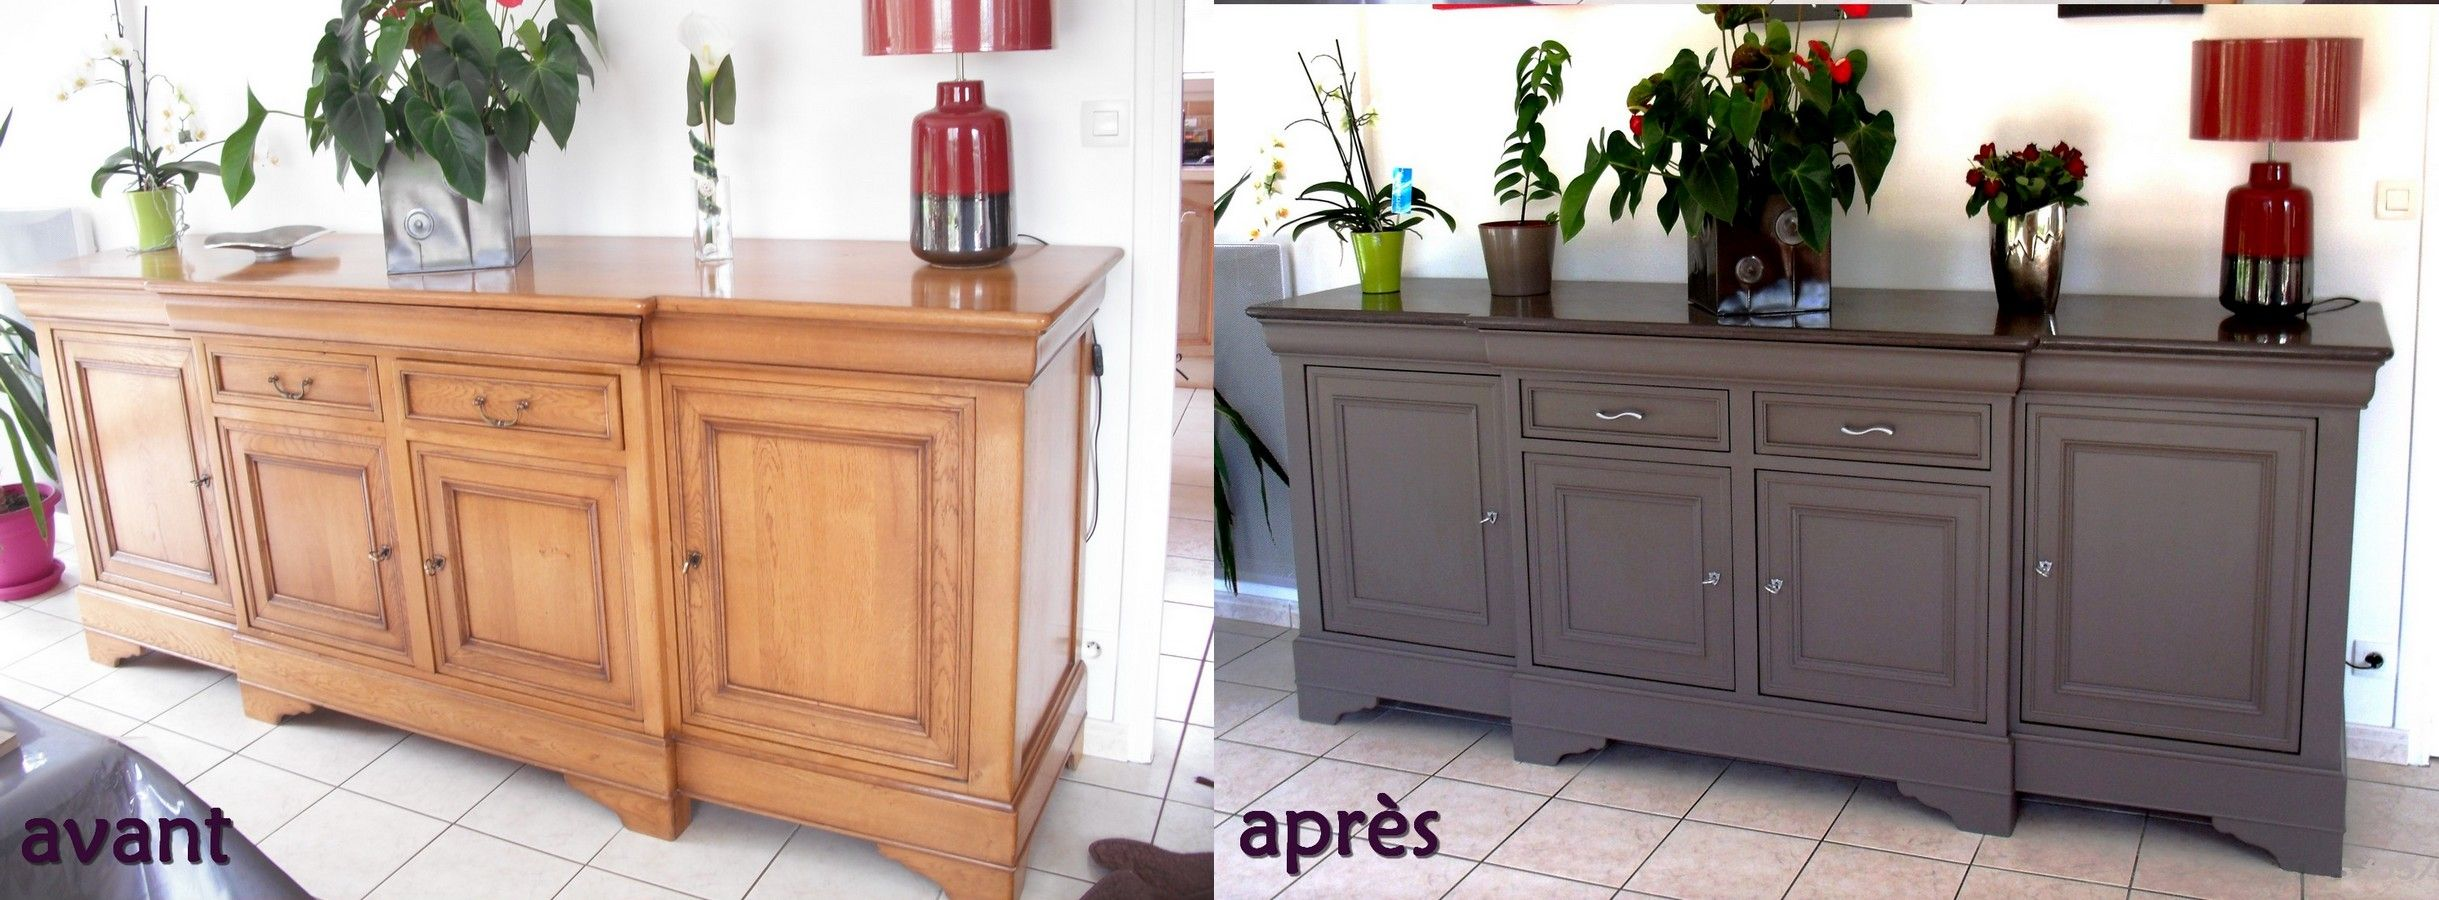 Avant buffet enfilade en ch ne vernis apr s peinture for Meuble enfilade but